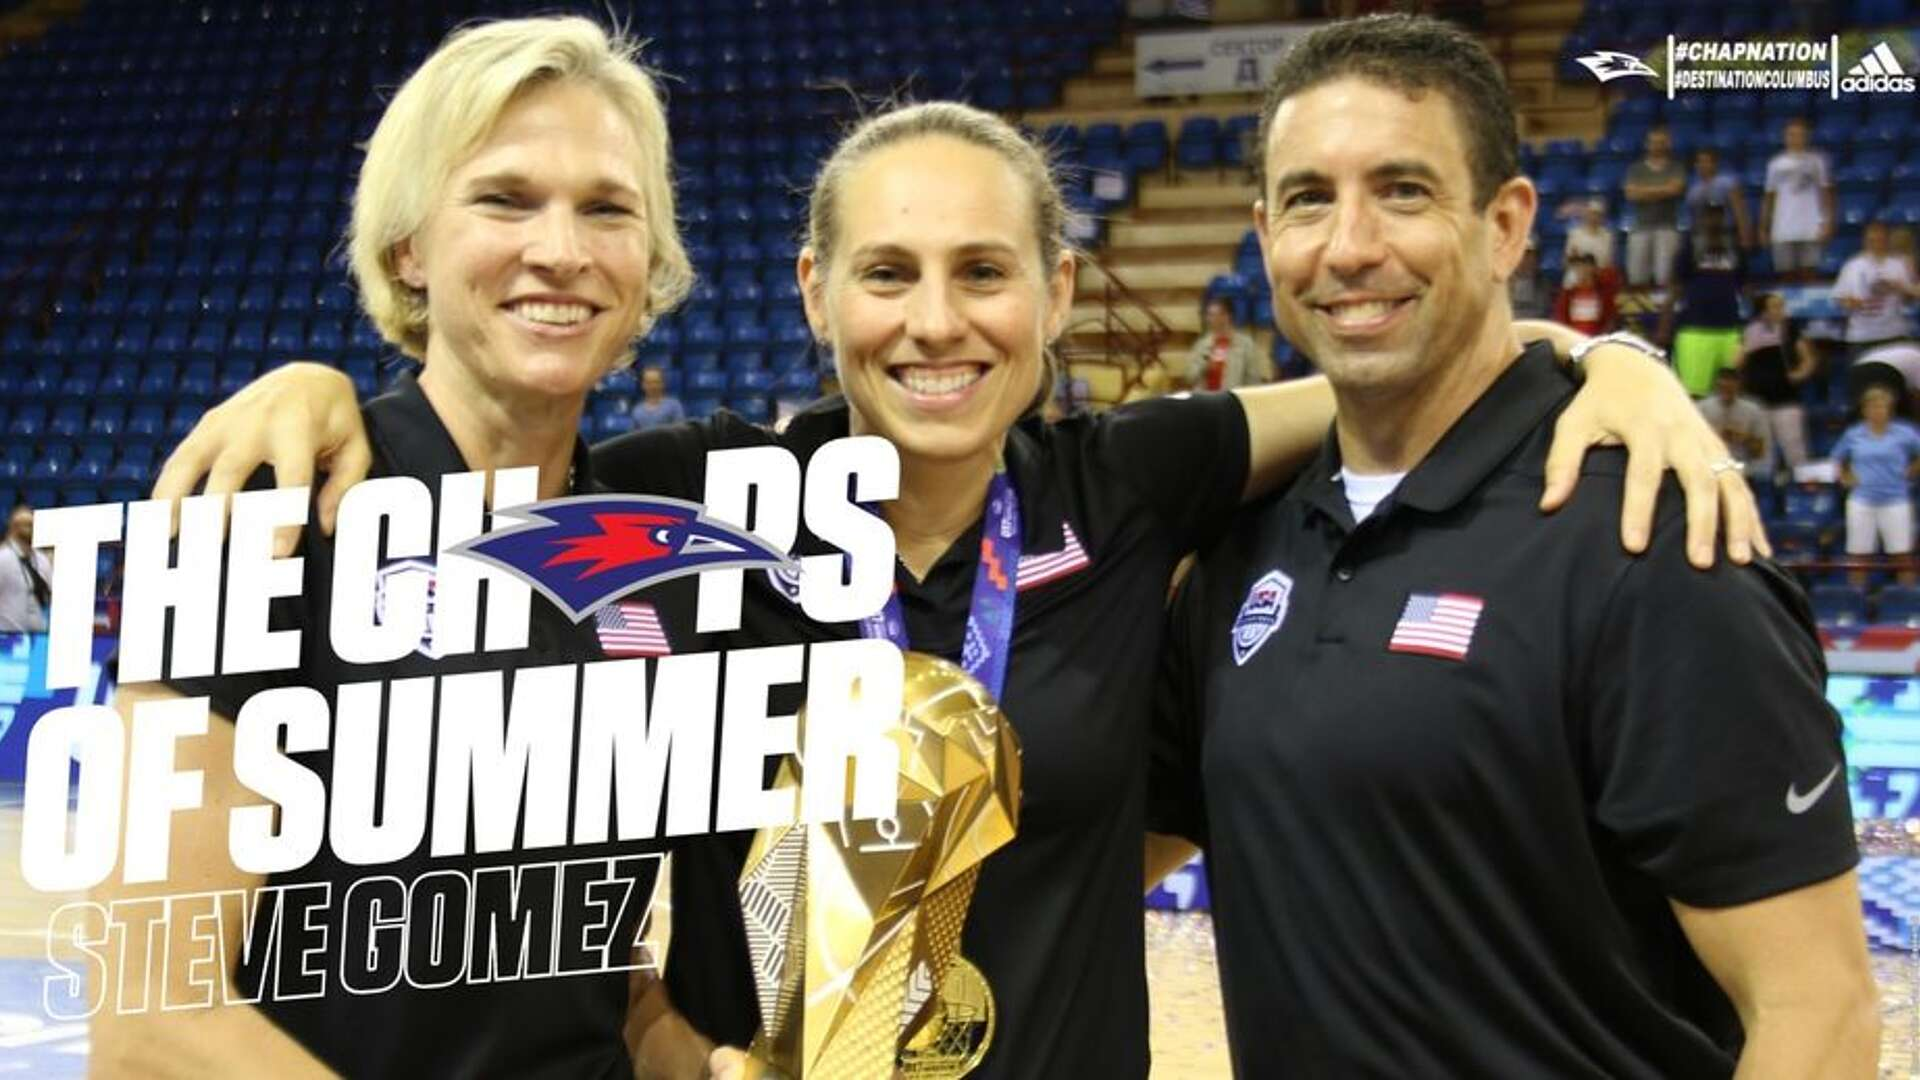 Gomez pictured with other USA coaches and the World Cup gold medal.